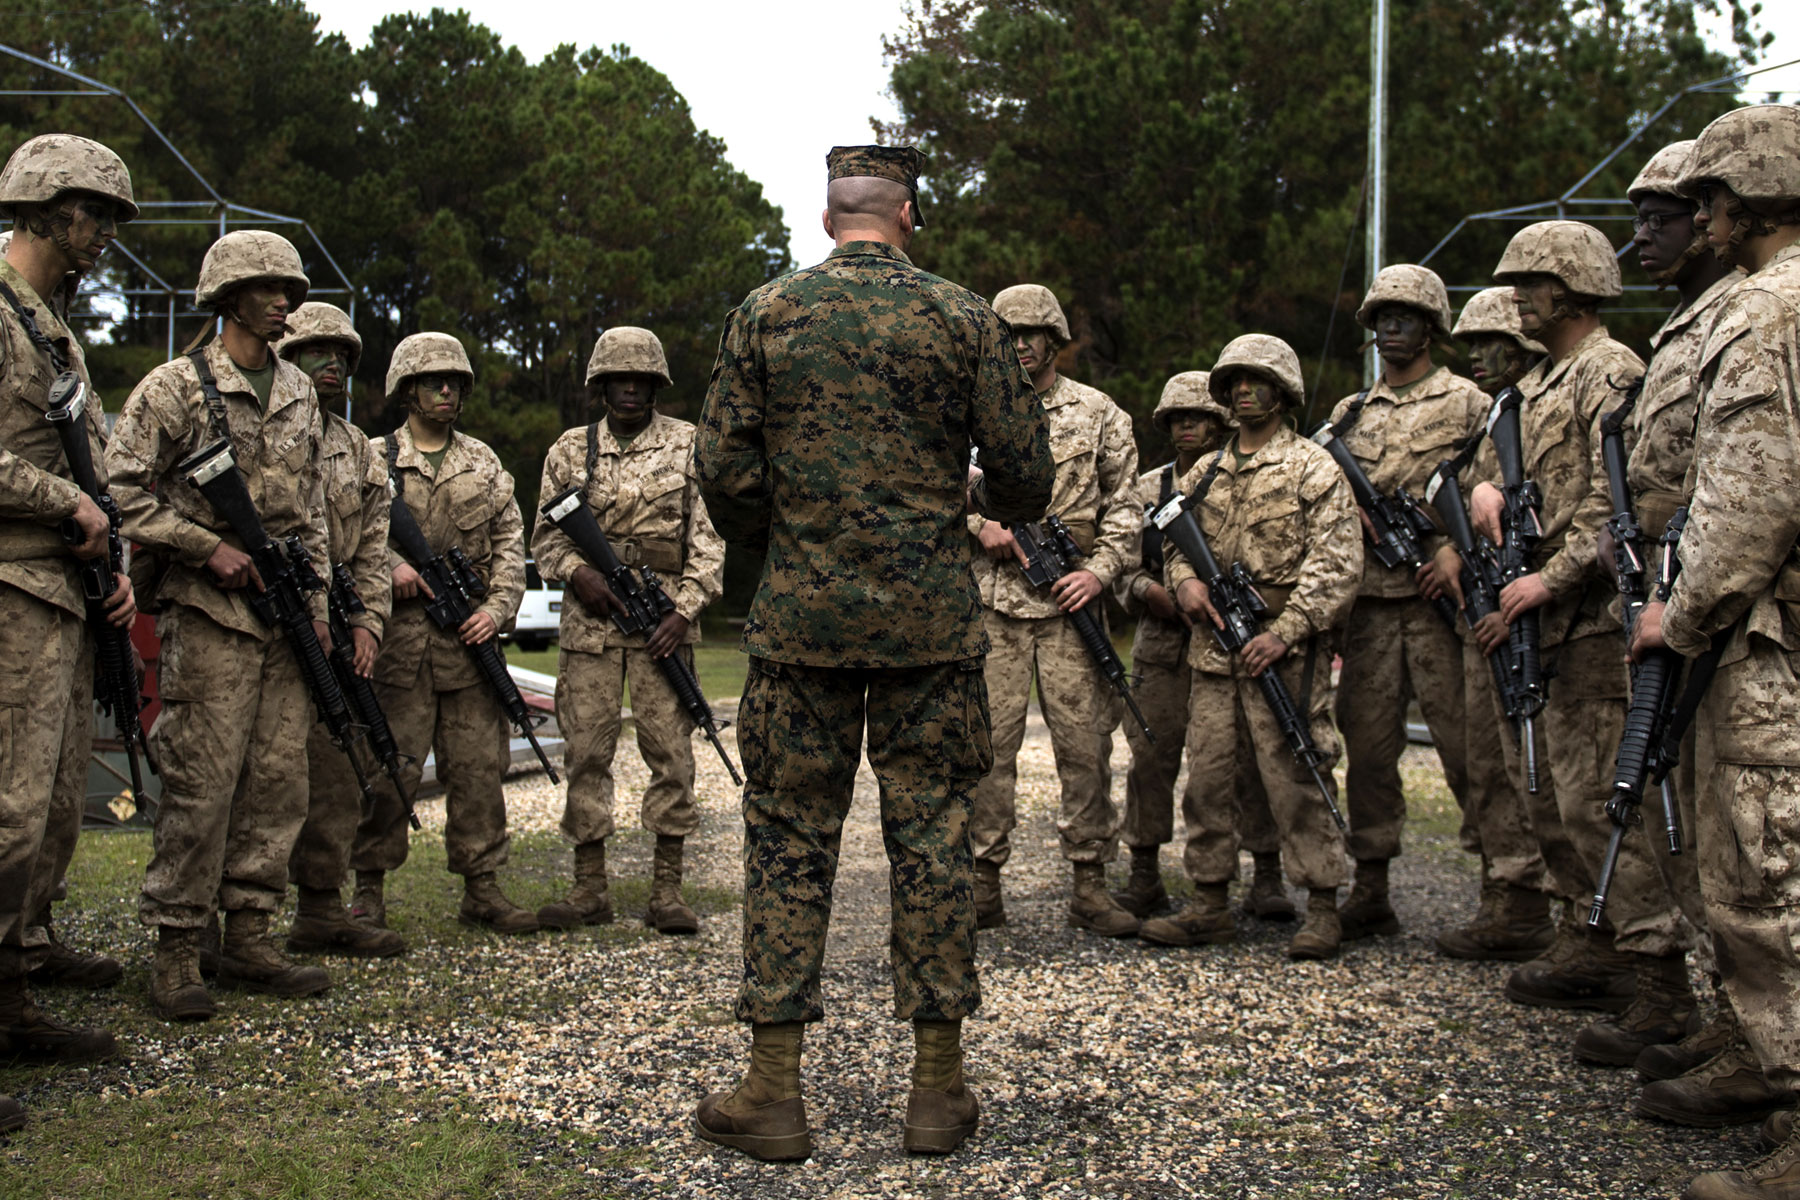 New Boot Camp Phase Aims To Produce Better Marines